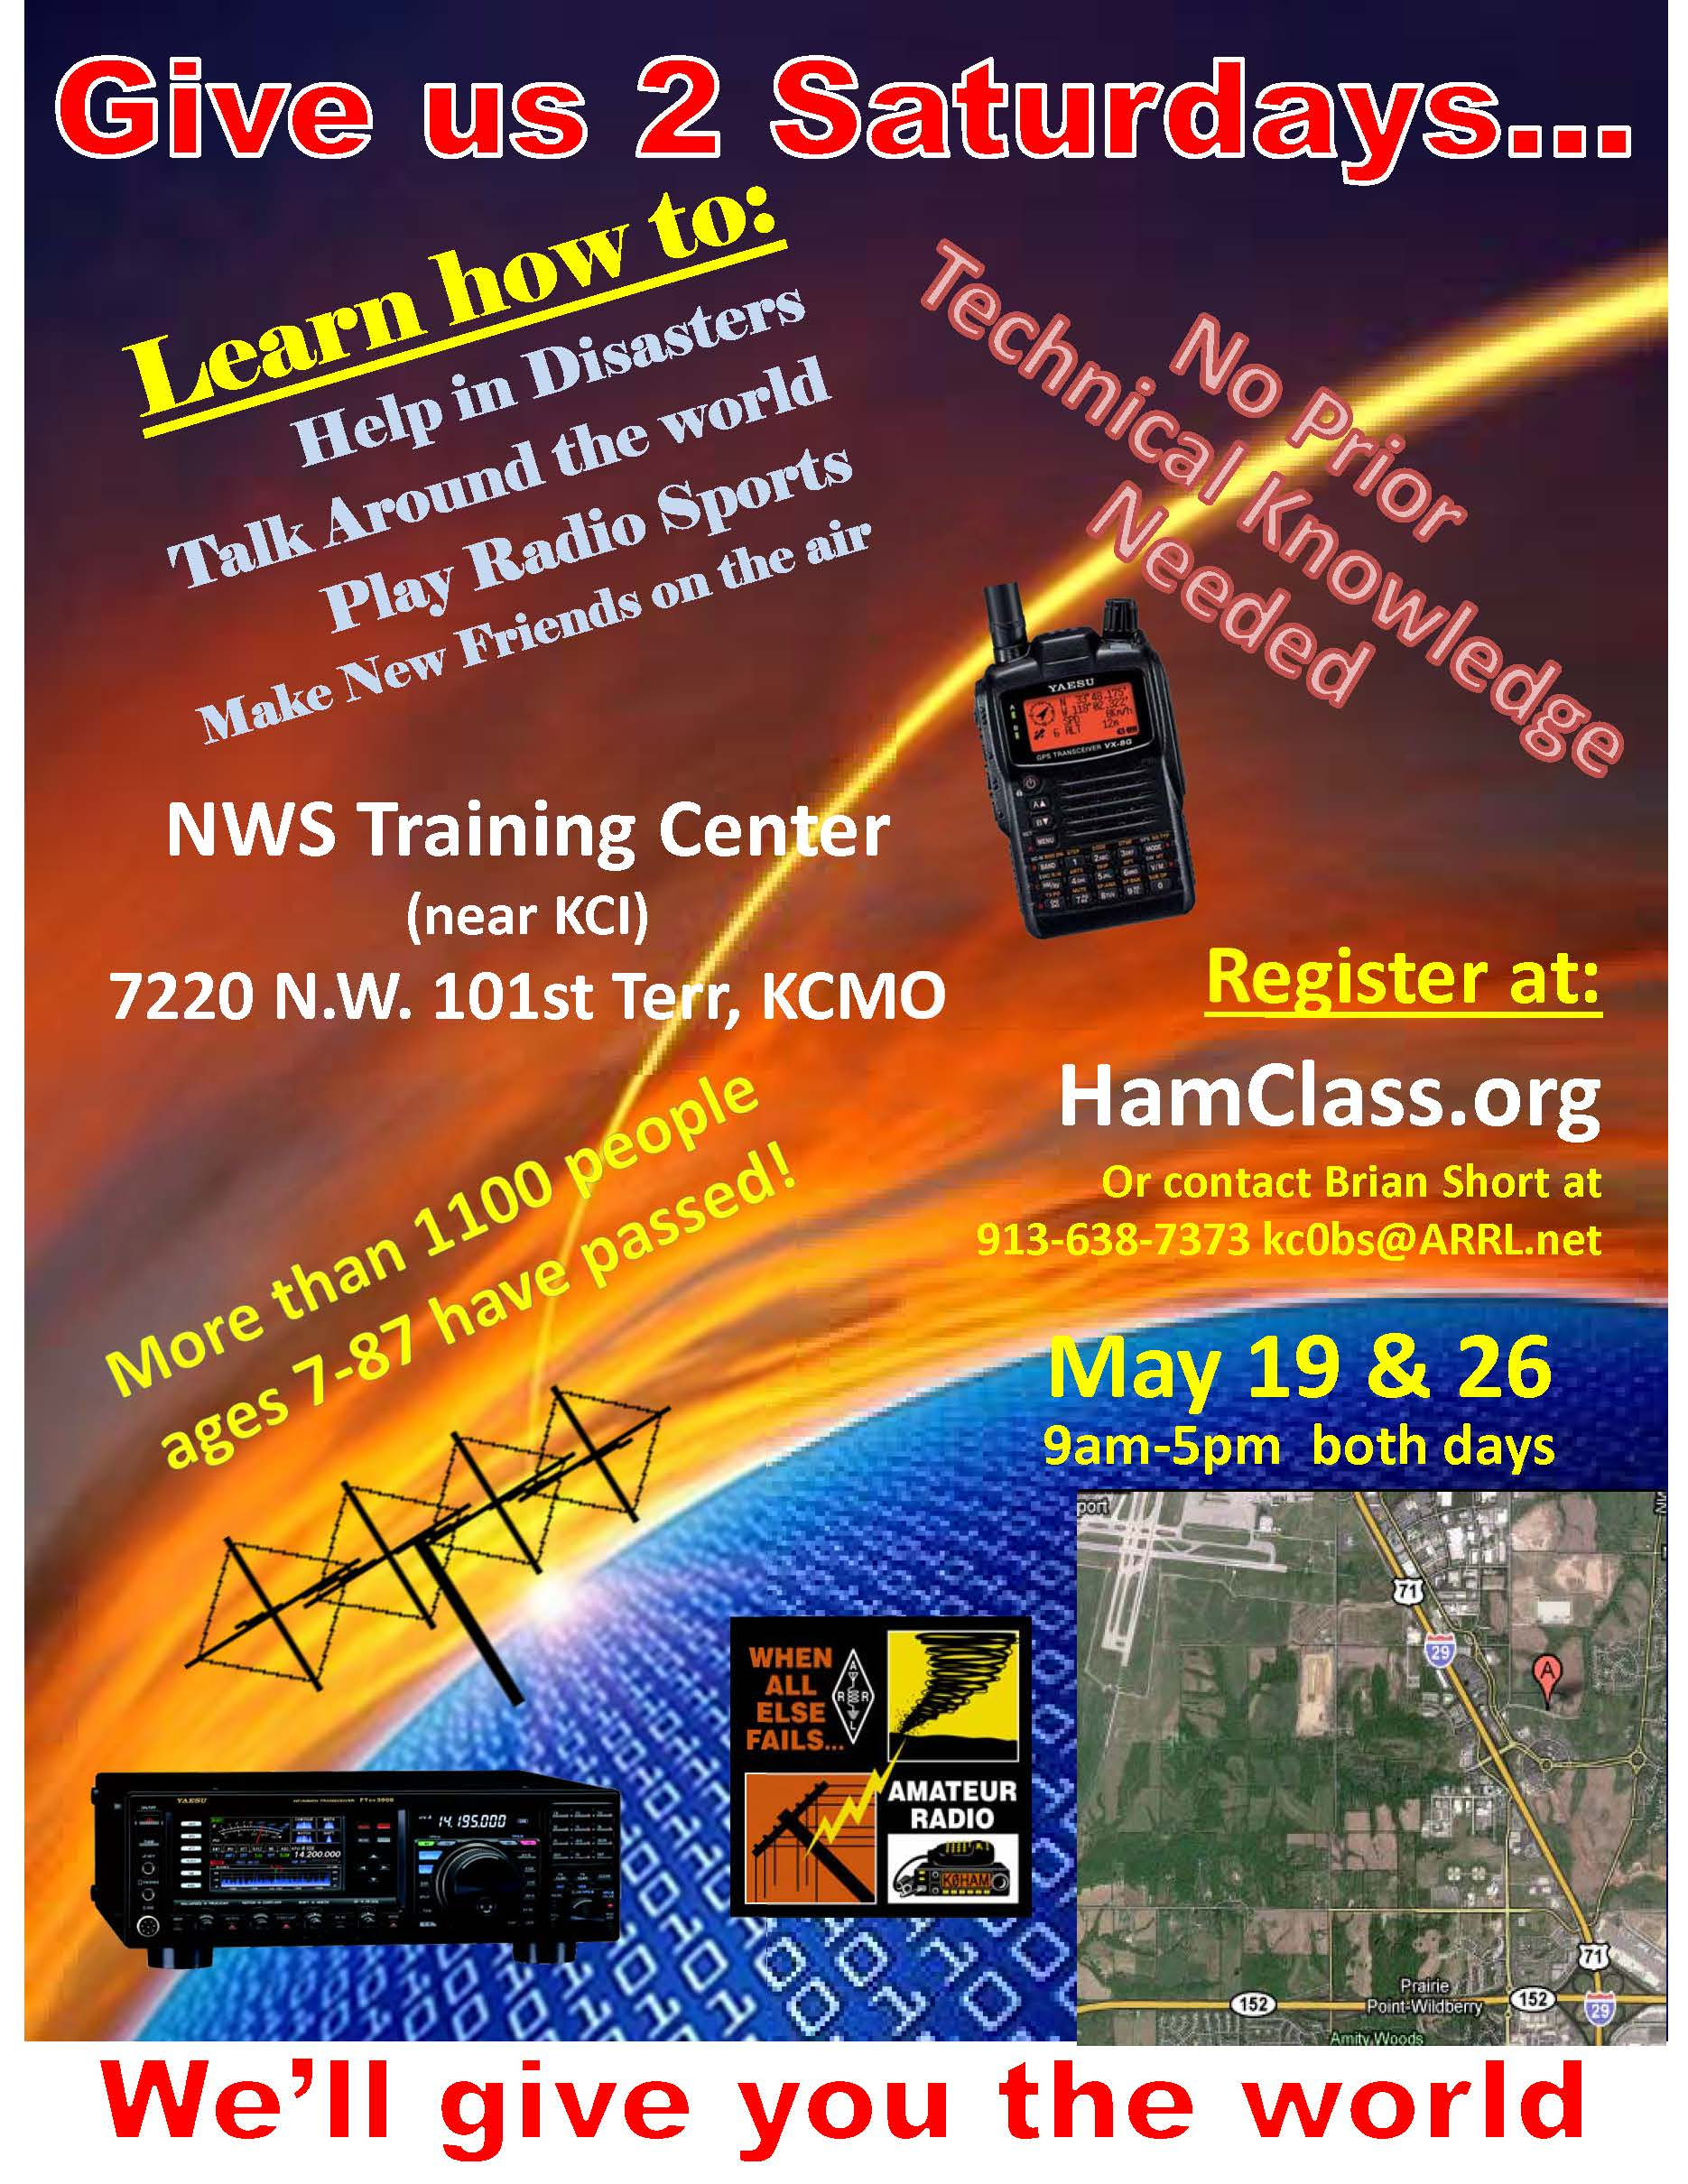 May 19 & 26 NWS Training Center near KCI